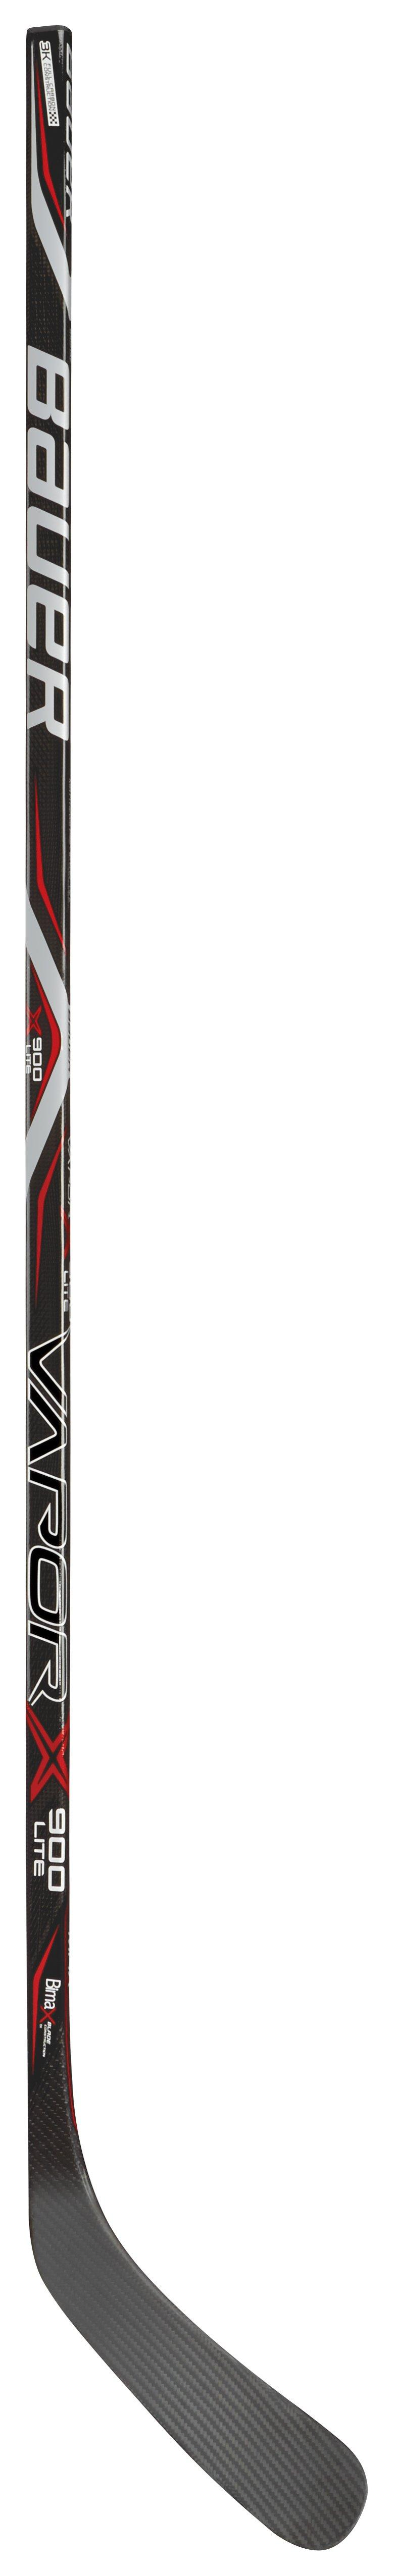 VAPOR X900 LITE GRIPTAC Stick Junior,,Размер M